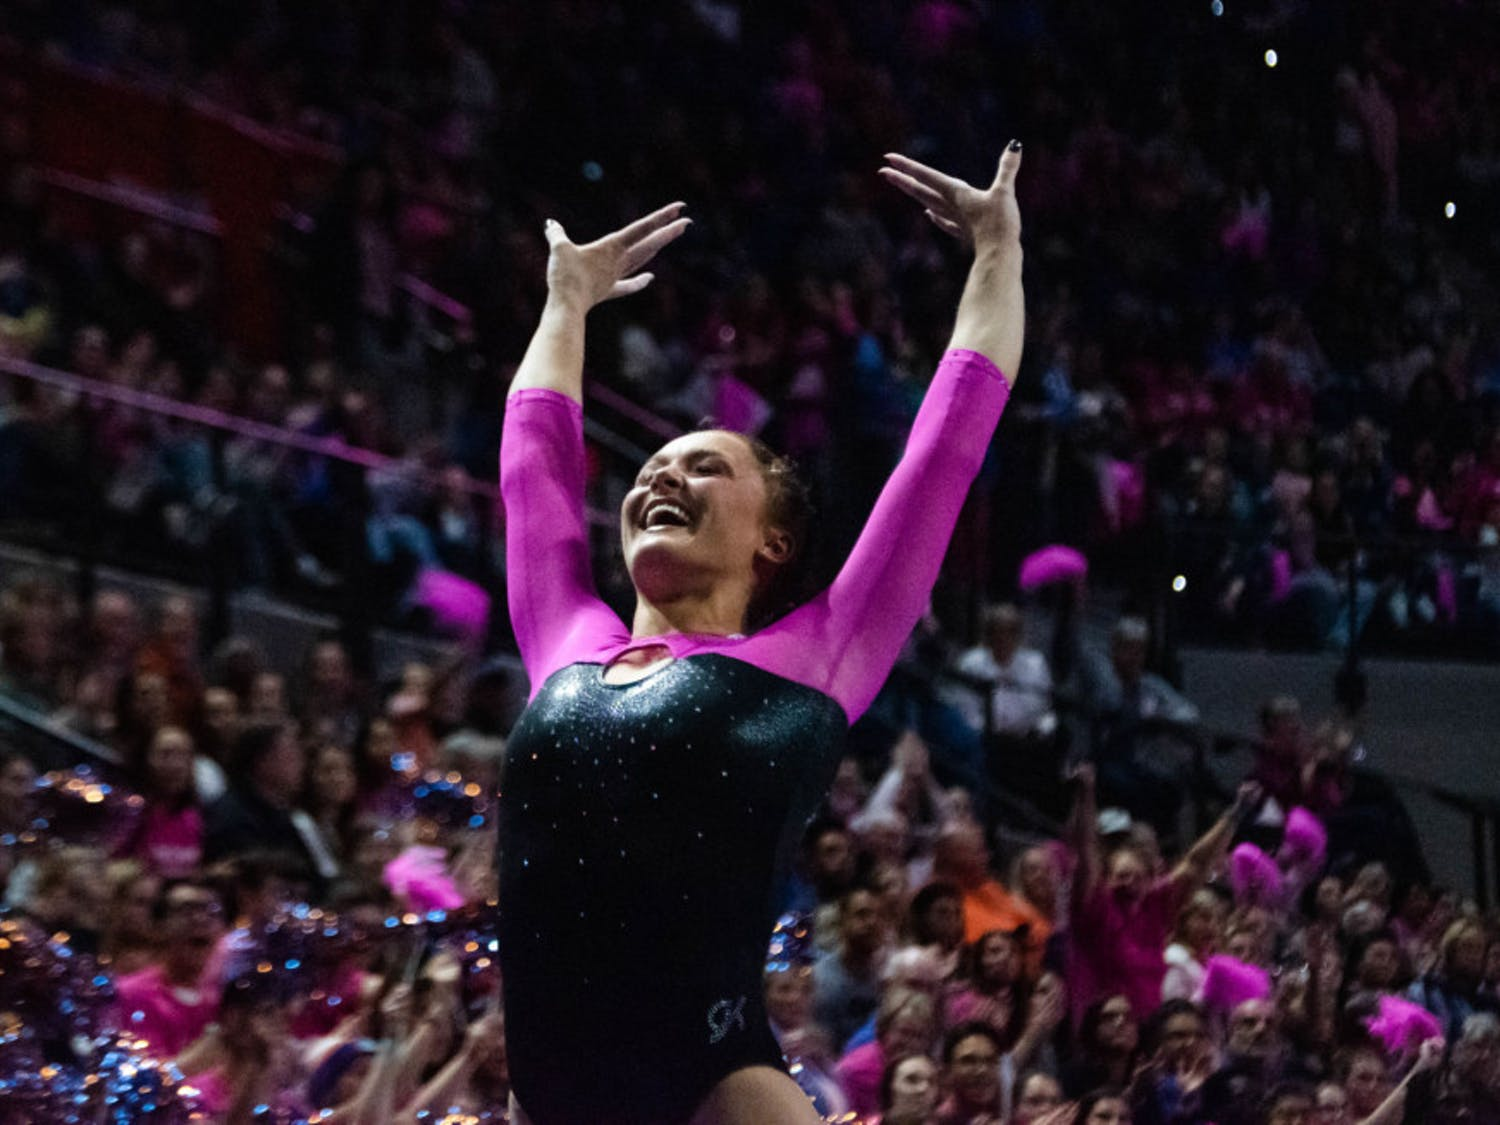 Savannah Schoenherr sticks the landing during her floor routine against Alabama on Feb. 21, 2020. The junior scored a 9.825 on the vault and on bars in Florida's victory Friday night.